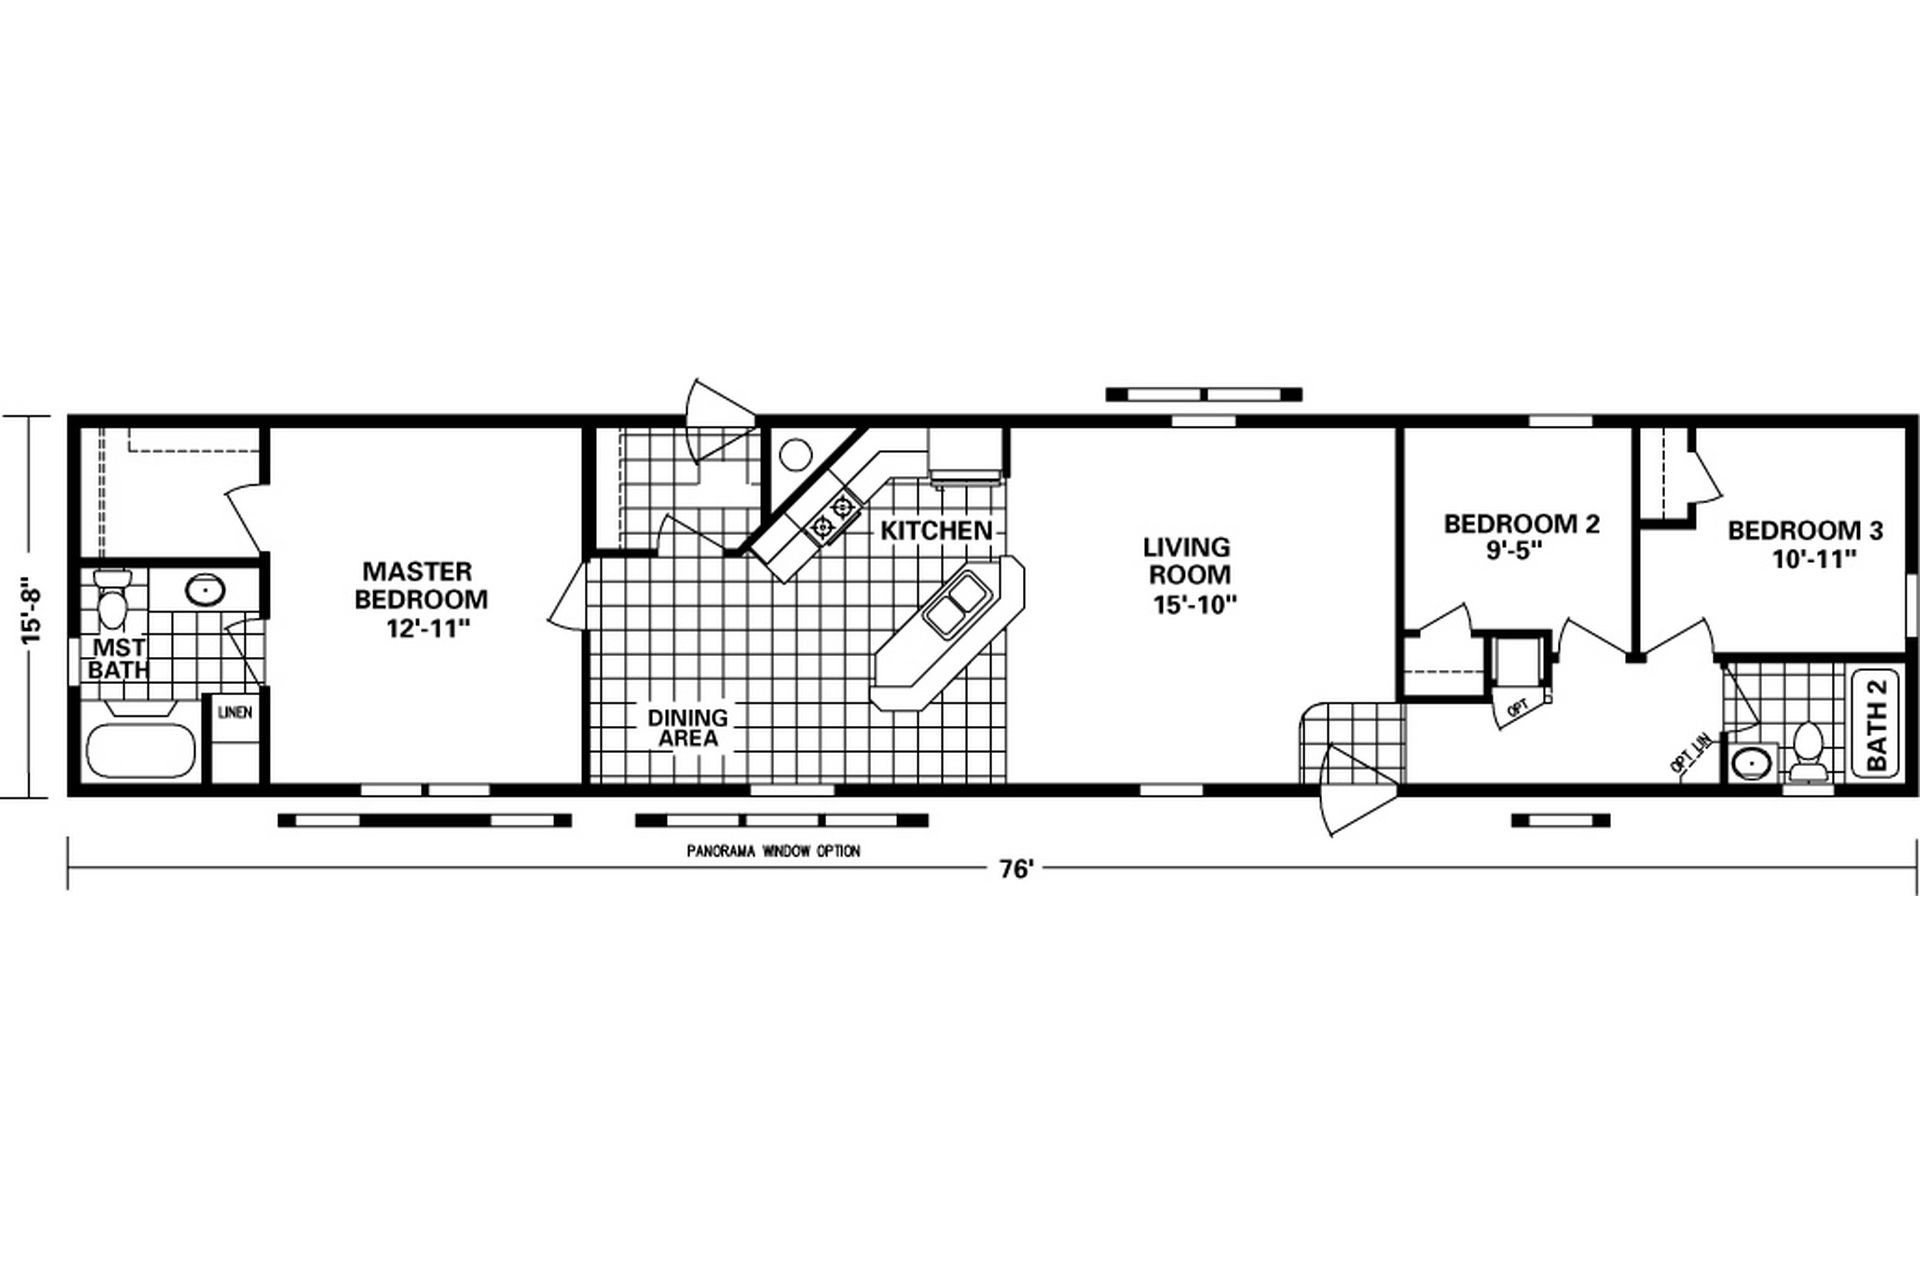 b109de690913c709760341b4bccef598 Clayton Homestead Mobile Home Floor Plan on richfield clayton homes floor plans, clayton triple wide manufactured homes, 16x60 mobile homes plans, clayton homes floor plans 3 bedrooms, modular home floor plans, columbia builders floor plans, 32x76 mobile home floor plans, find mobile home floor plans, clayton modular homes, clayton park model homes, solitaire mobile home floor plans, 16x70 mobile home floor plans, clayton floor home house plans, 1999 mobile home floor plans, adobe mobile home floor plans, clayton pinehurst mobile home, oakwood mobile home floor plans, sunshine mobile home floor plans, champion mobile home floor plans,